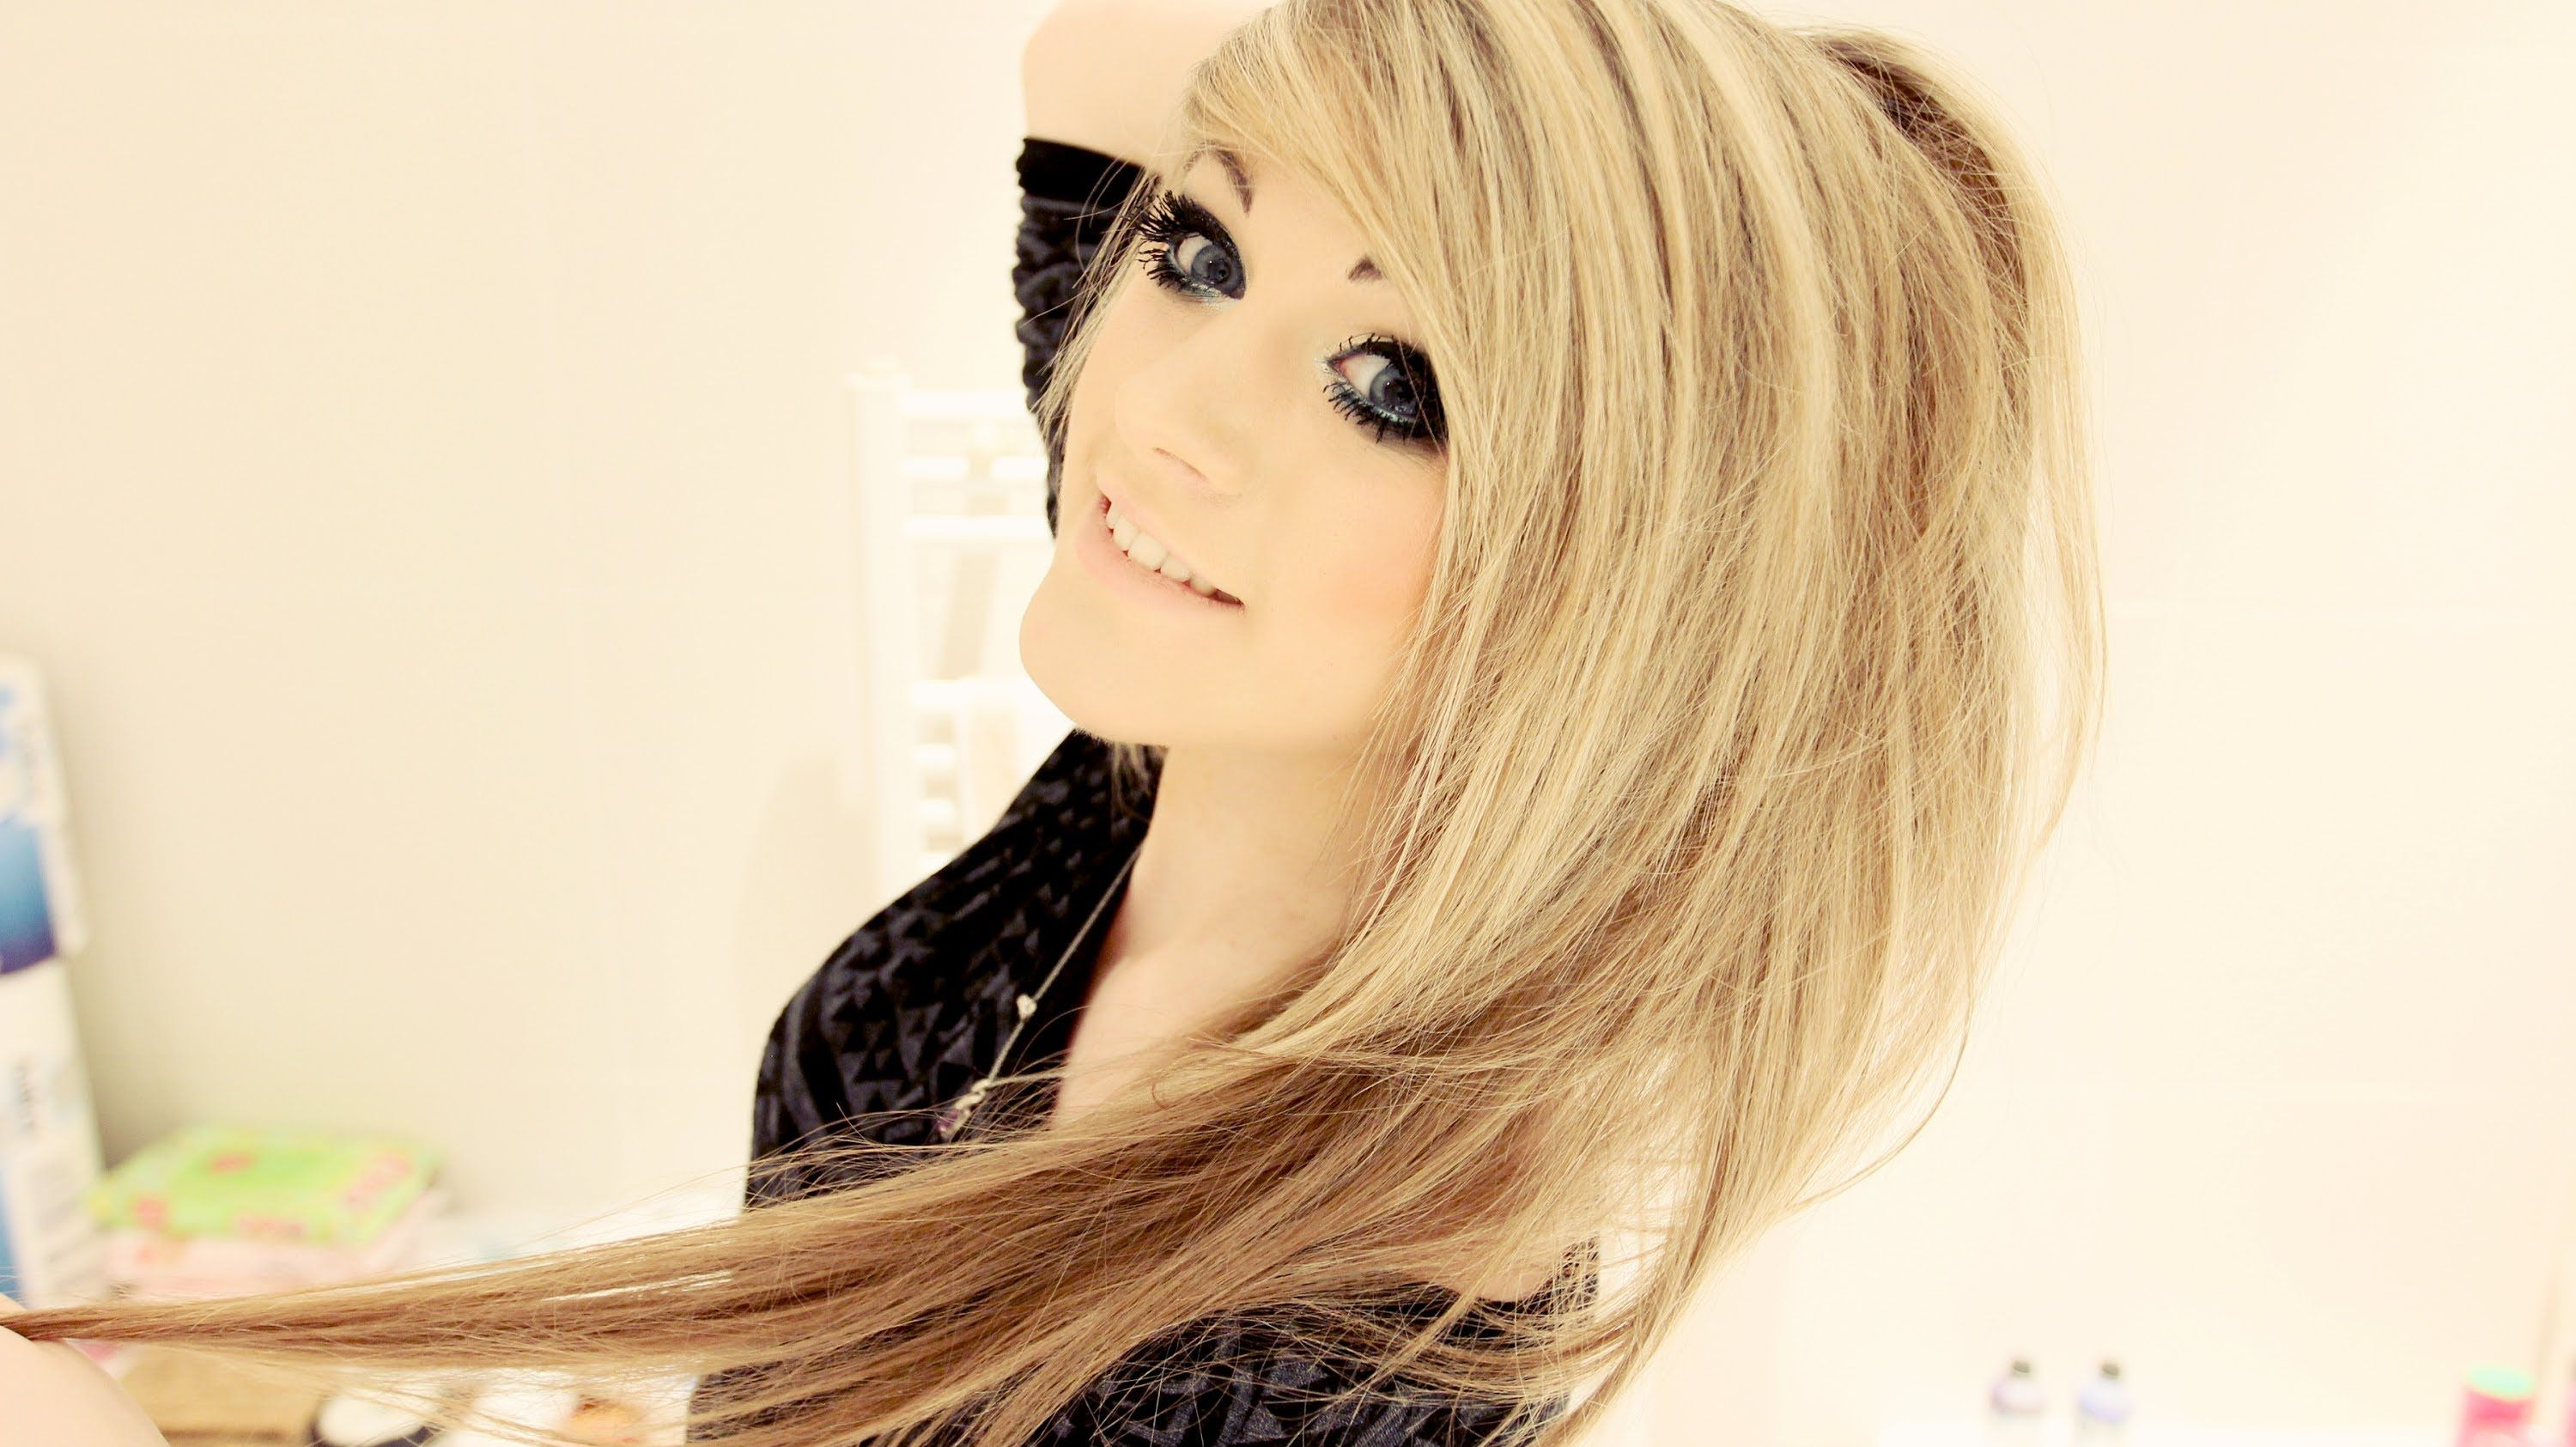 My hair routineueue marina joyce is amazing she is one